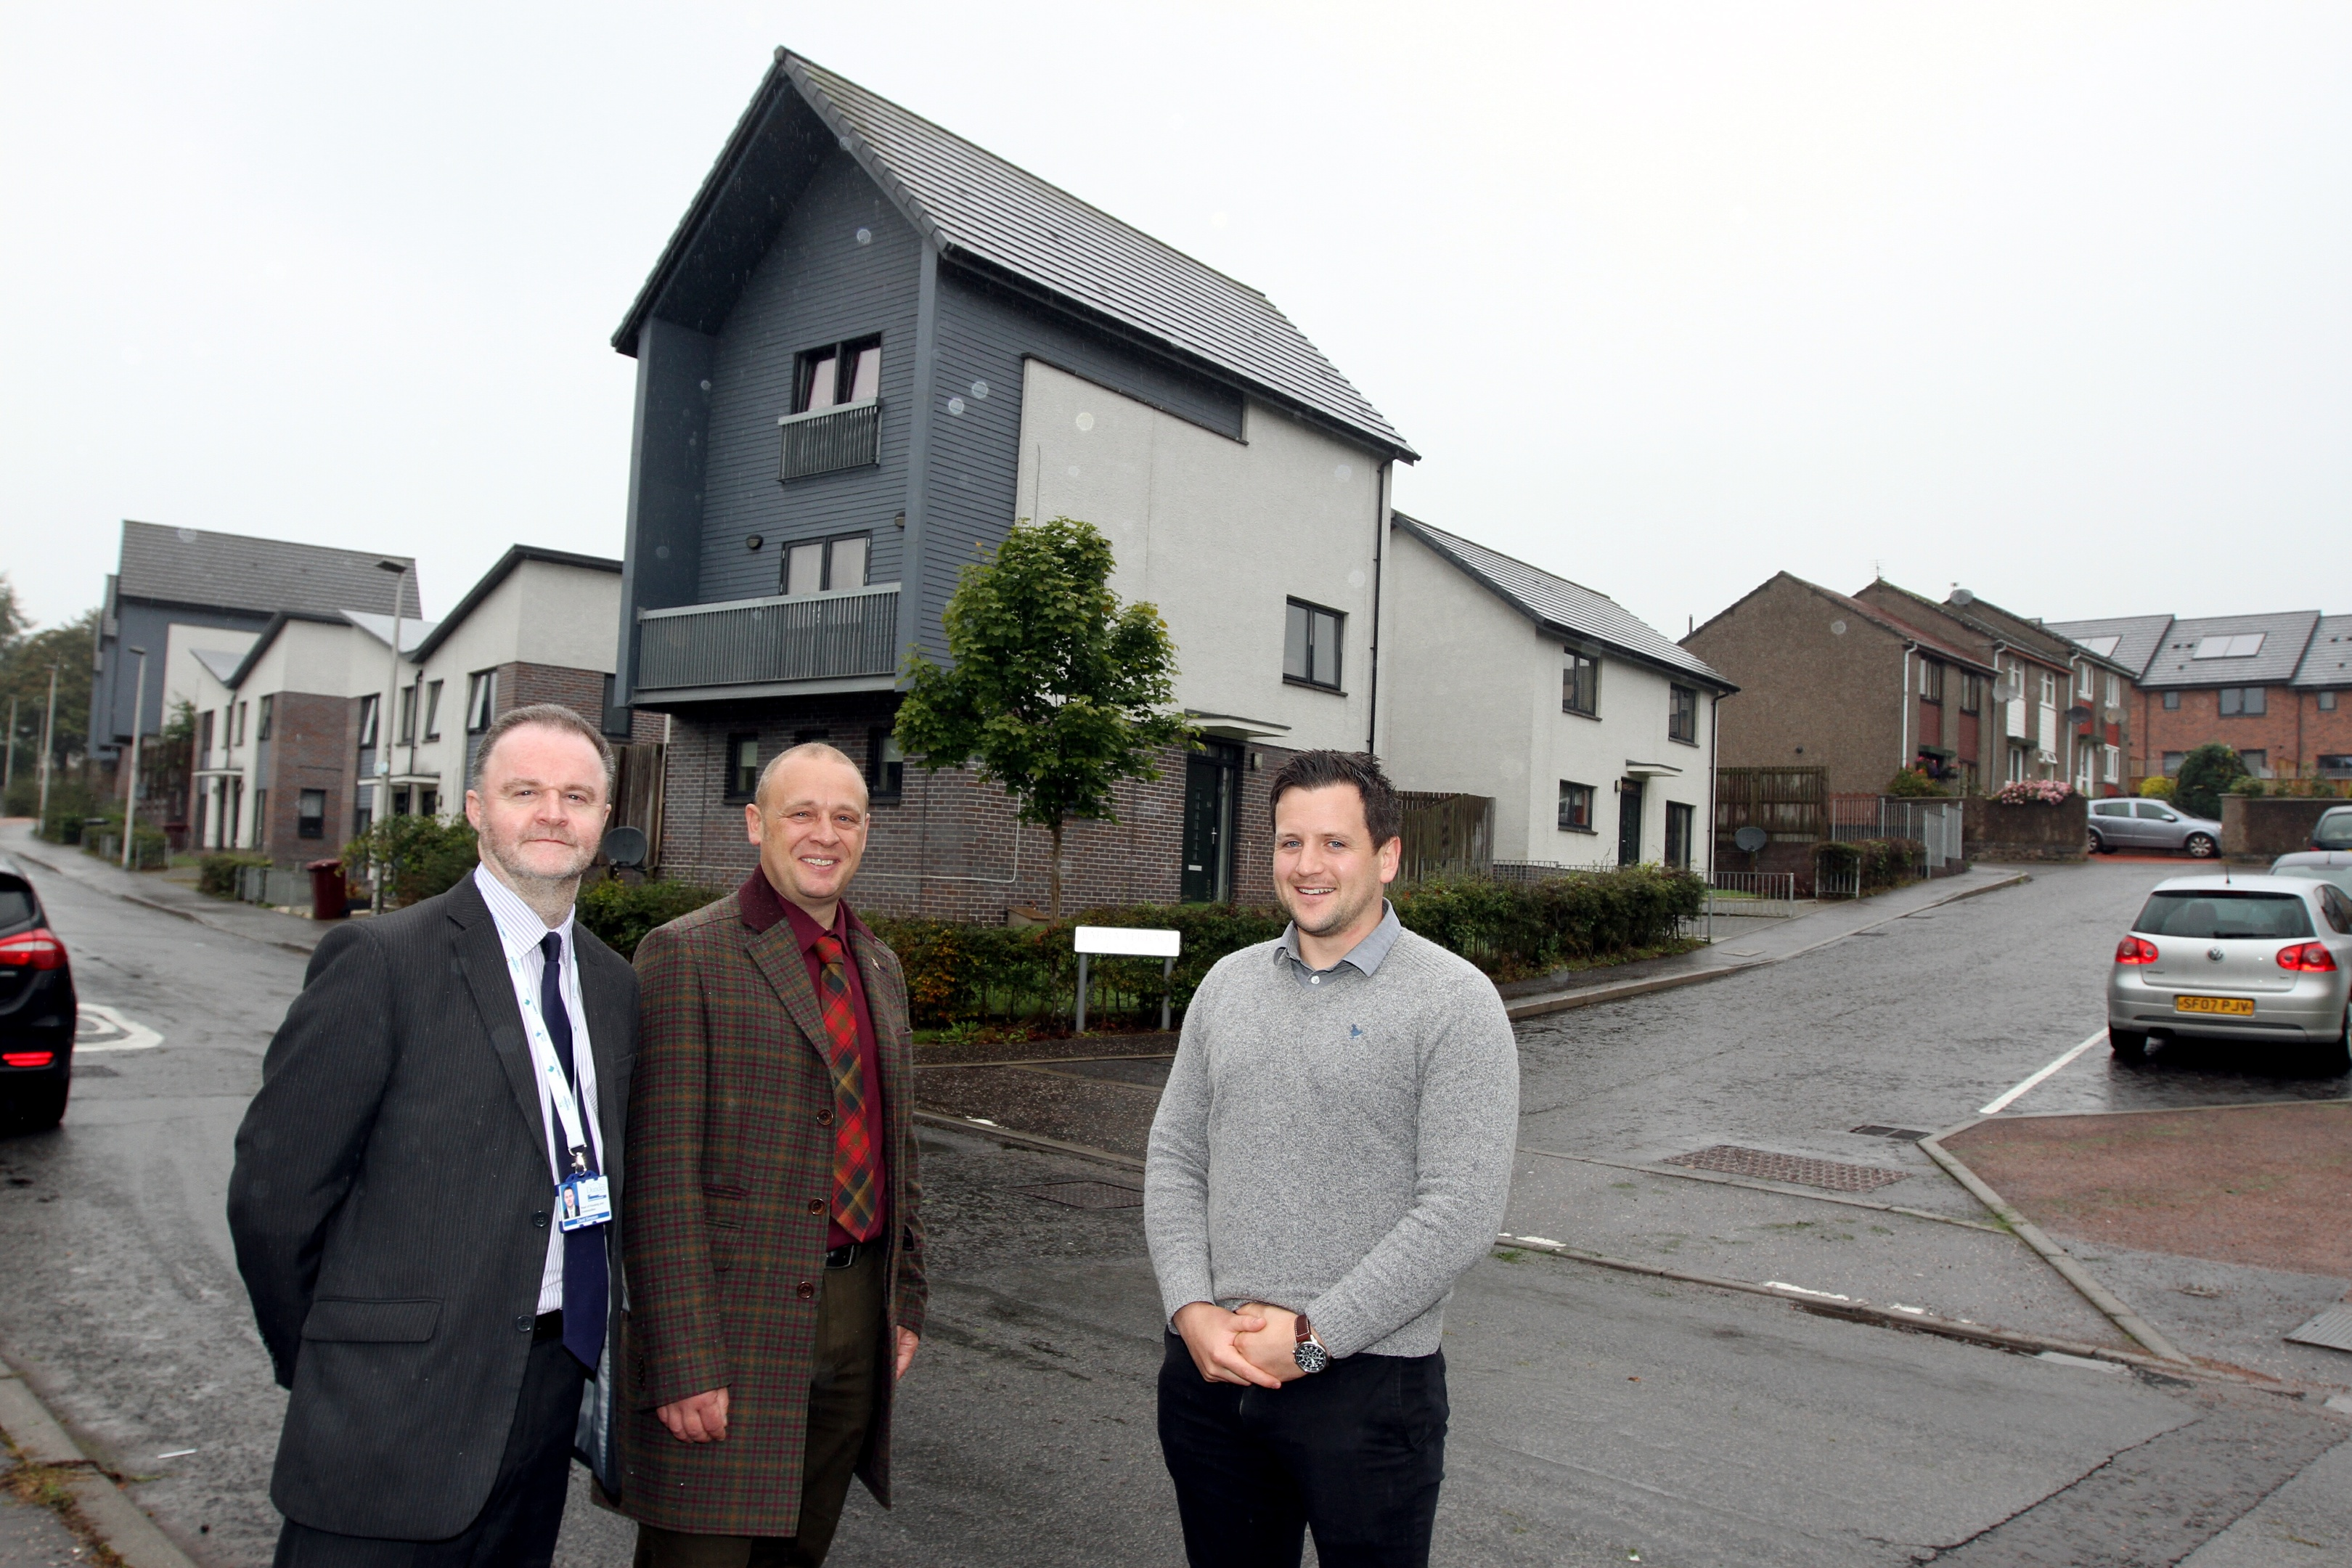 David Simpson, head of housing at Dundee City Council; Kevin Cordell, neighbourhood services convener; and Graeme Gemmell, delivery manager for Home Scotland visit the new homes in Mill O'Mains.